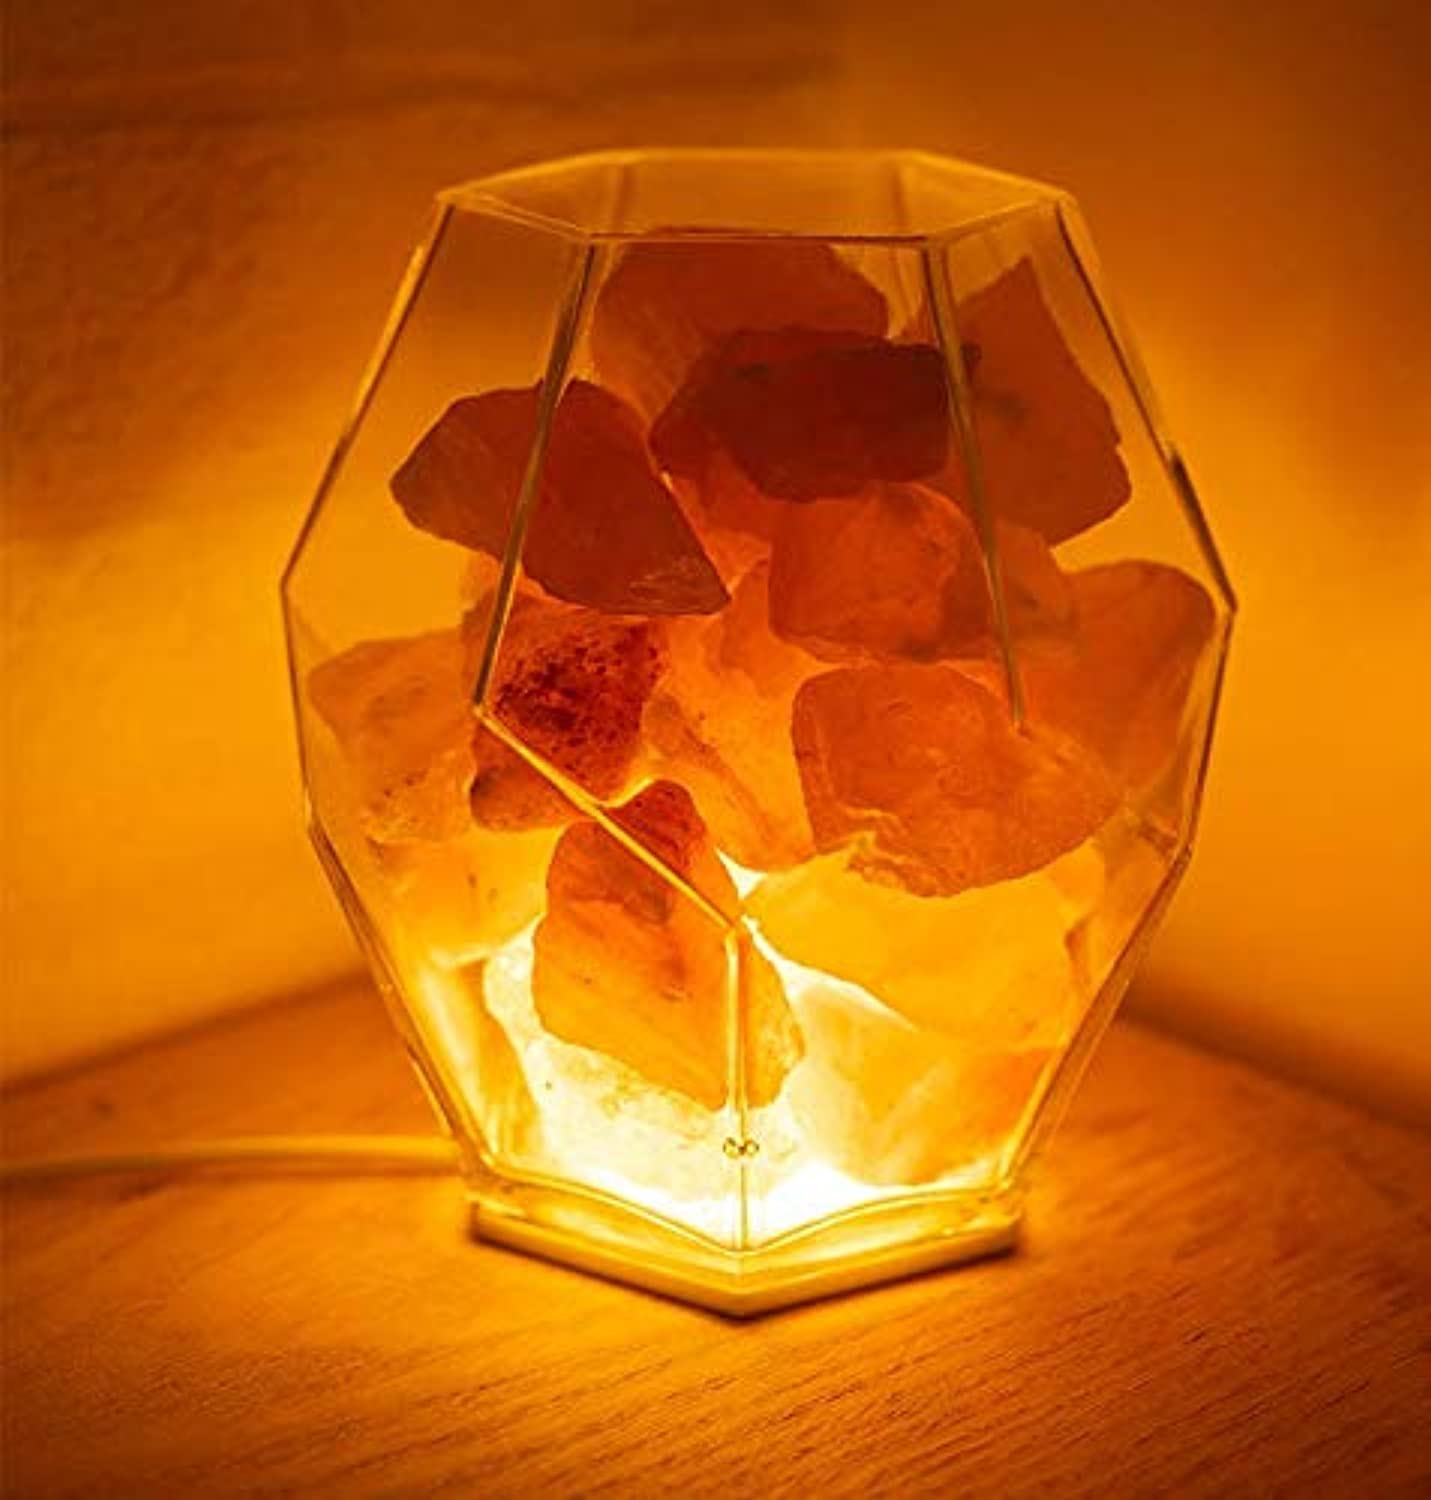 Hnfsliuhao Crystal Salt Lamp Creative Simple Nordic Bedroom Bedside Lamp Decoration Table Lamp Dimming Night Light